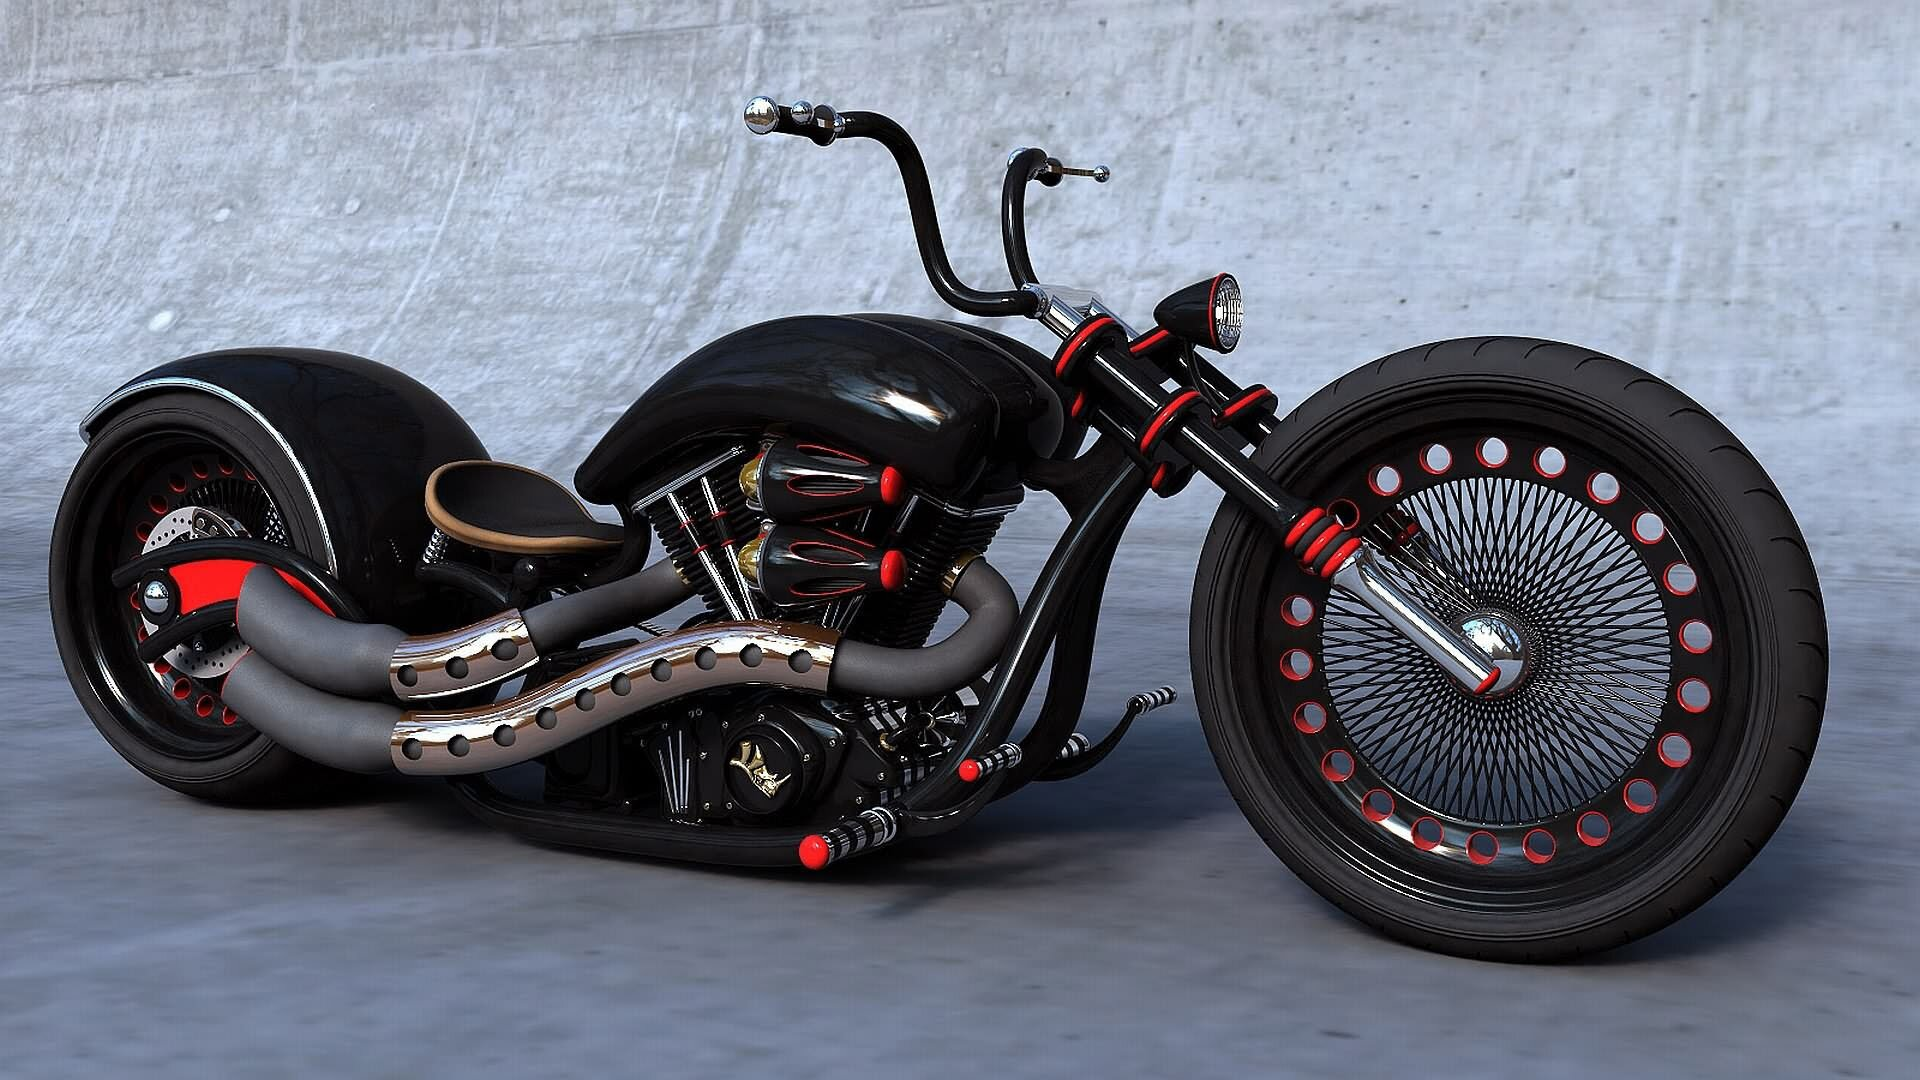 Coolest Motorcycles